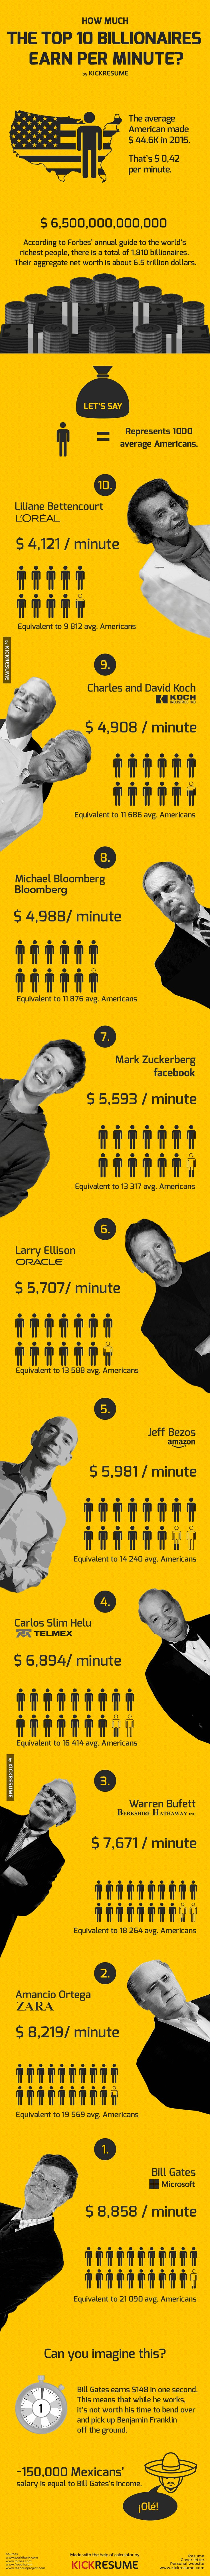 How Much the Top 10 Billionaires Earn